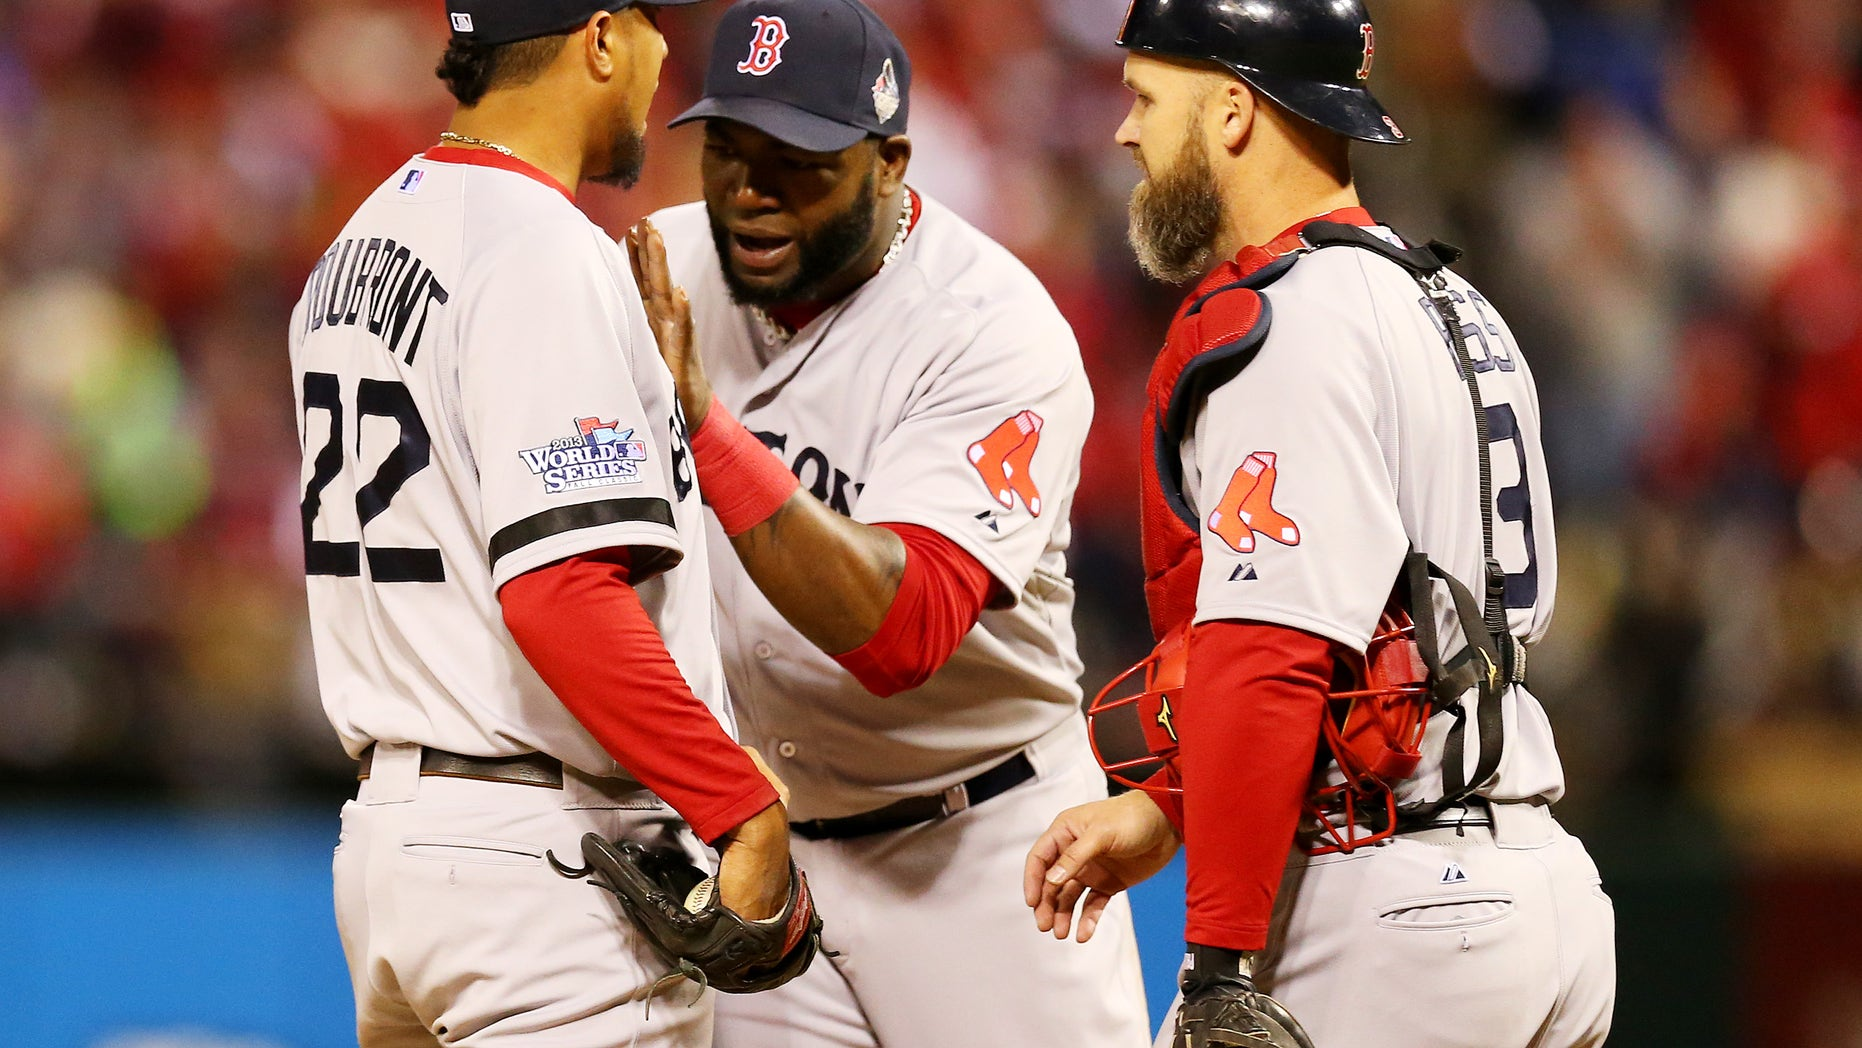 ST LOUIS, MO - OCTOBER 27:  David Ortiz #34 and David Ross #3 of the Boston Red Sox talk with pitcher Felix Doubront #22 against the St. Louis Cardinals during Game Four of the 2013 World Series at Busch Stadium on October 27, 2013 in St Louis, Missouri.  (Photo by Ronald Martinez/Getty Images)